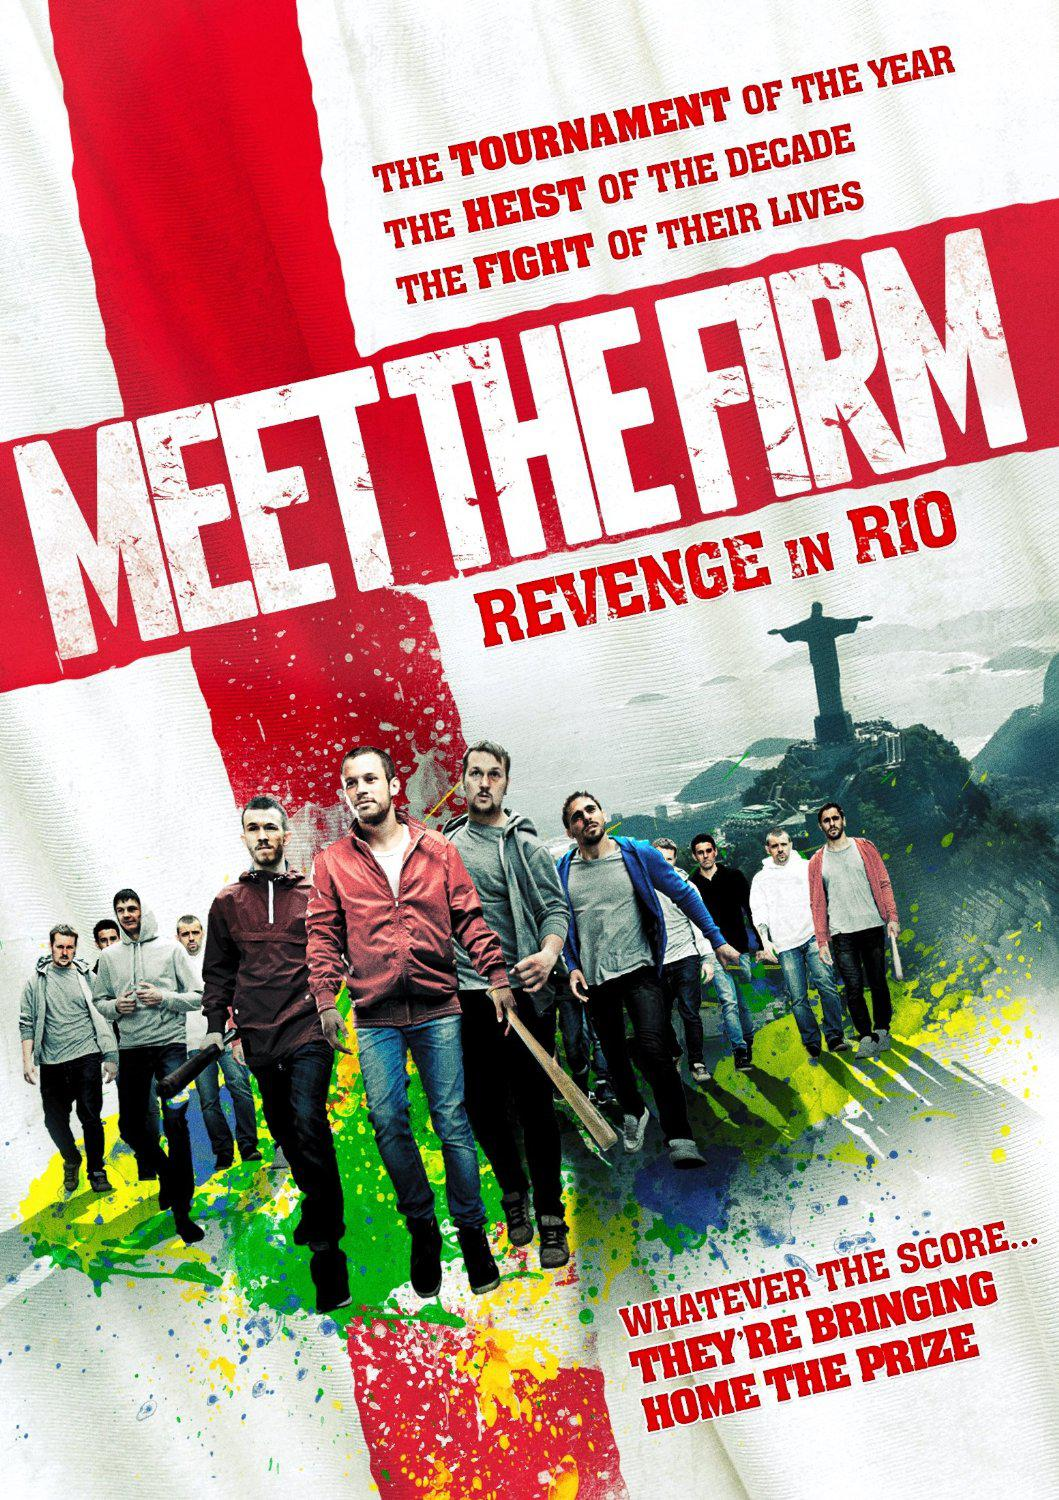 Meet the Firm: Revenge in Rio (VO)